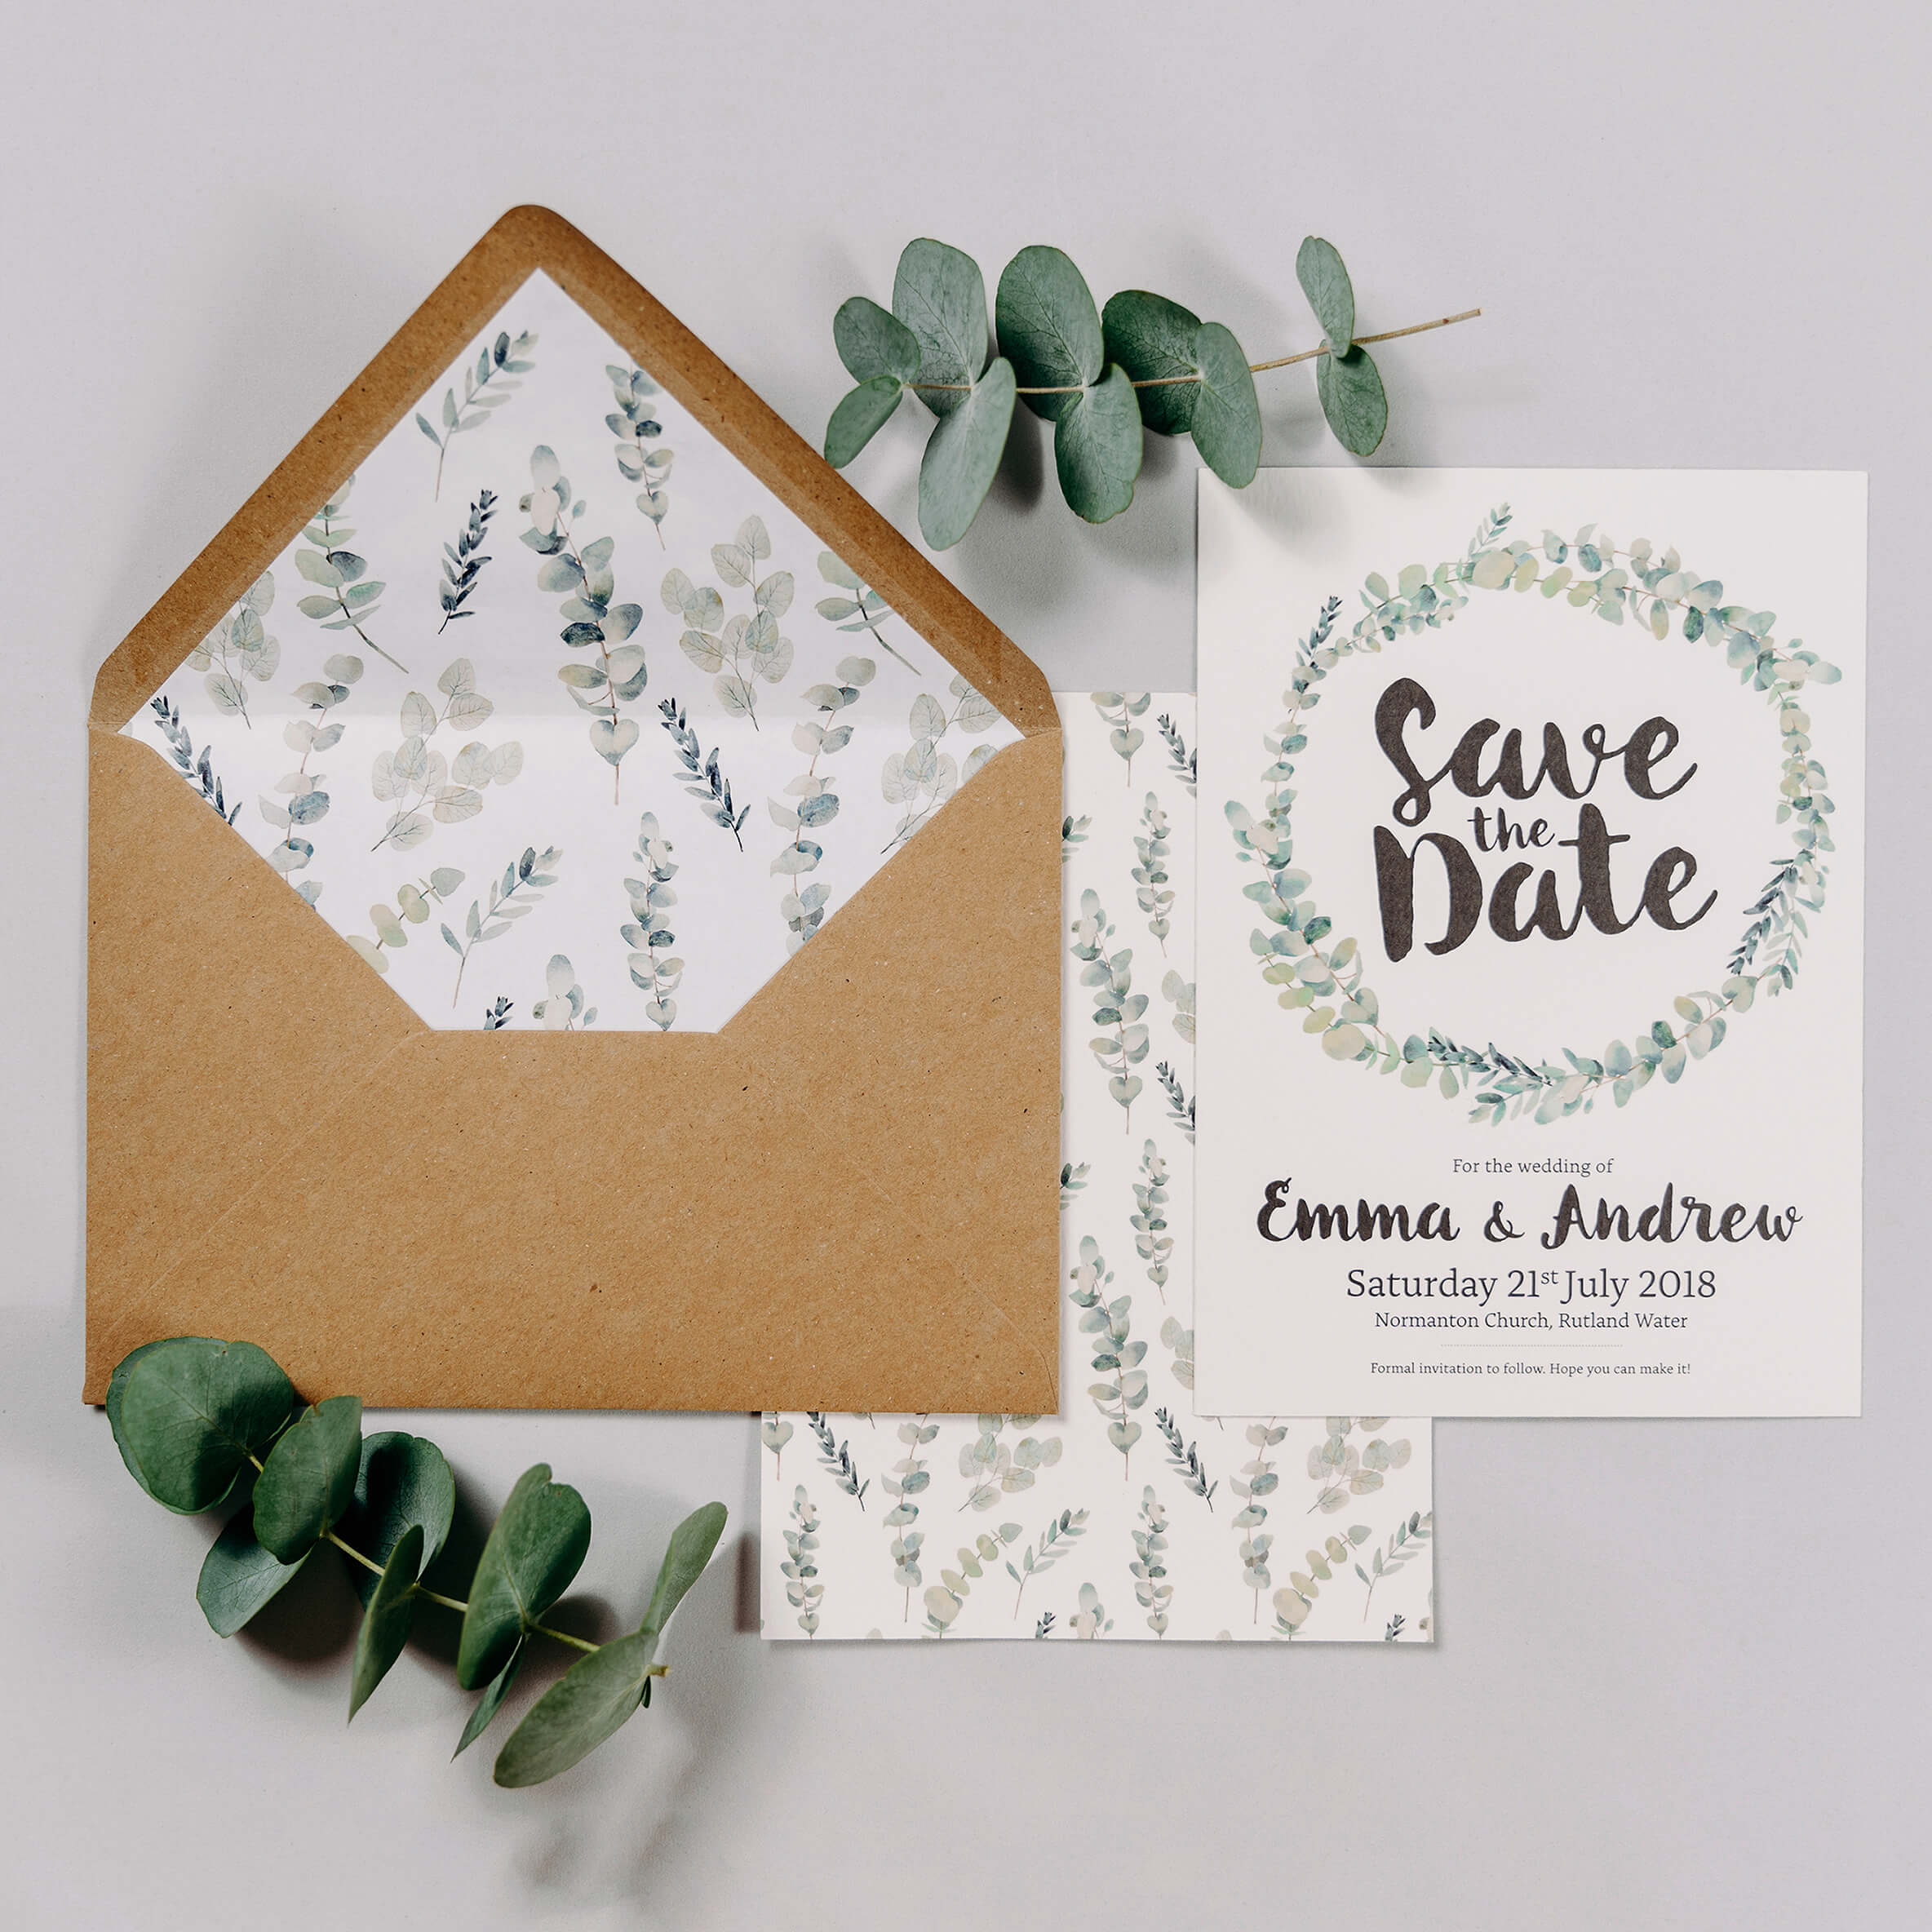 Rustic Green & White Eucalyptus A5 Double Sided Wedding Save The Date Card With Wreath Design& Kraft Brown Envelope With Eucalyptus Envelope Liner